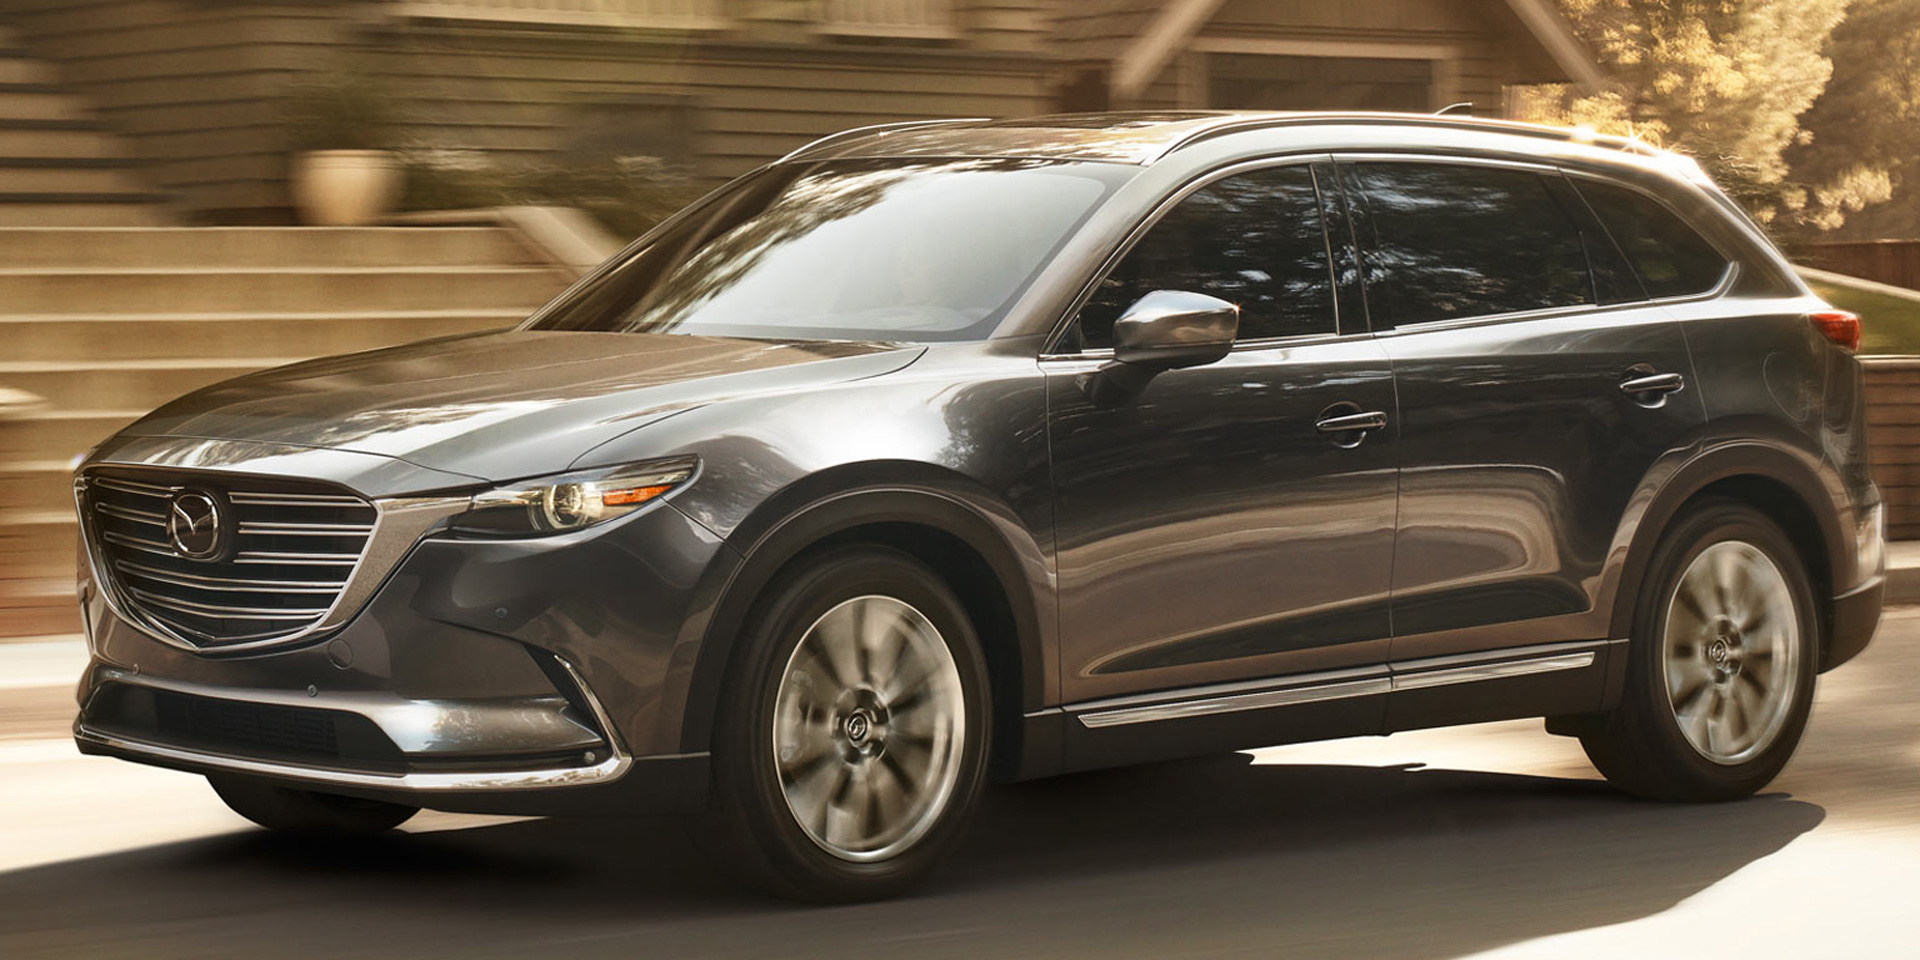 2018 mazda cx 9 vehicles on display chicago auto show. Black Bedroom Furniture Sets. Home Design Ideas